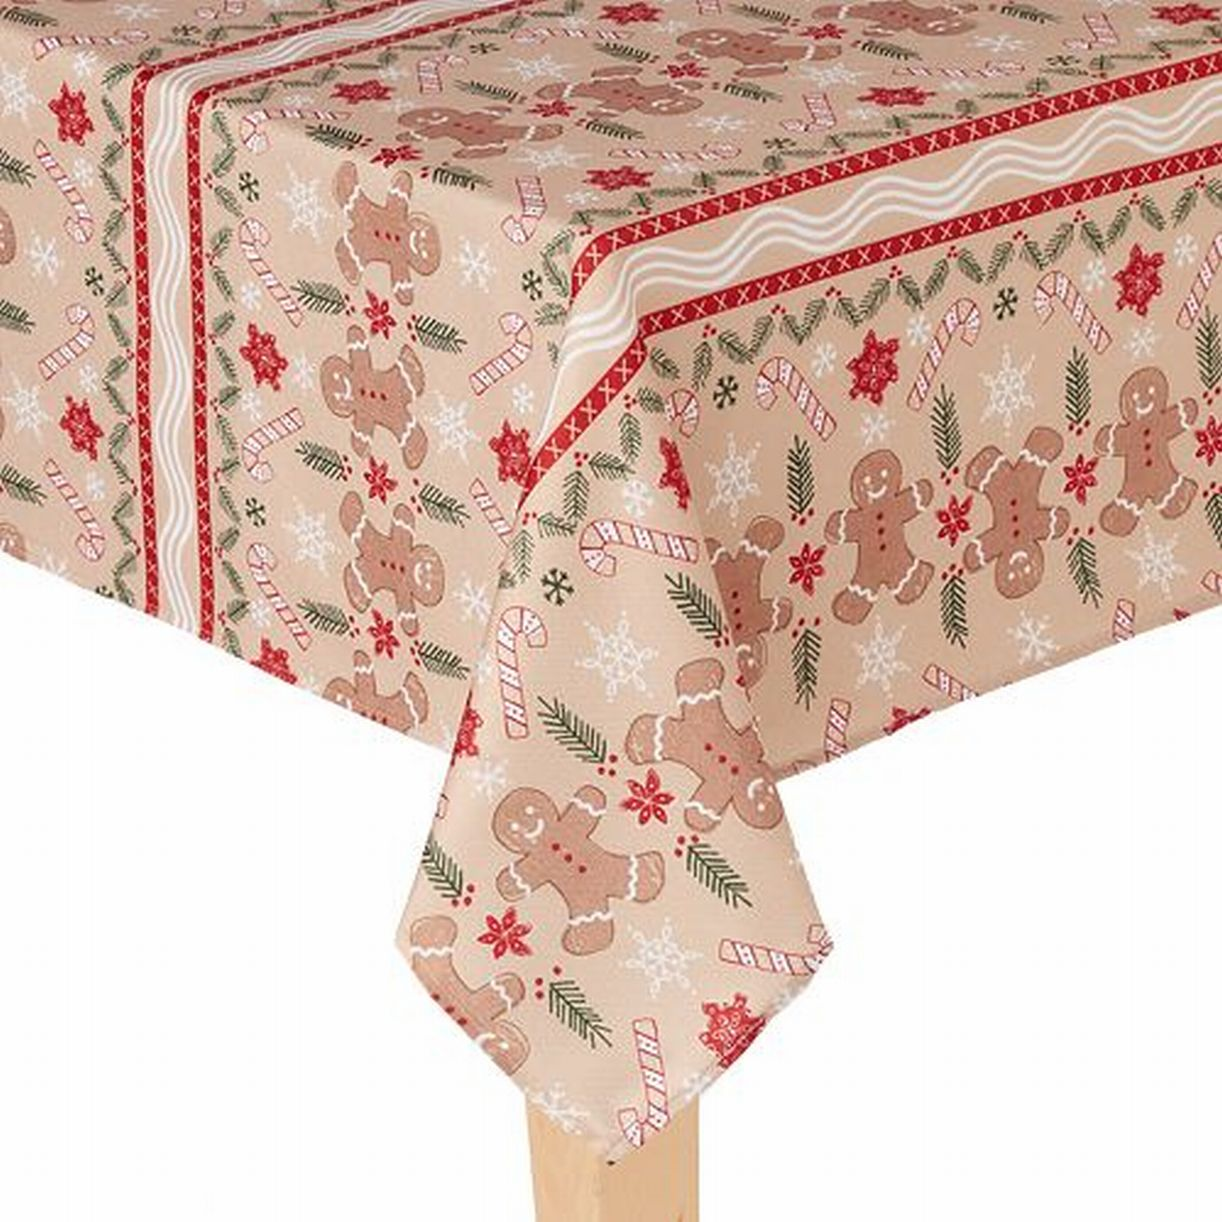 St Nicholas Square Gingerbread Man Christmas Tablecloth Fabric ...